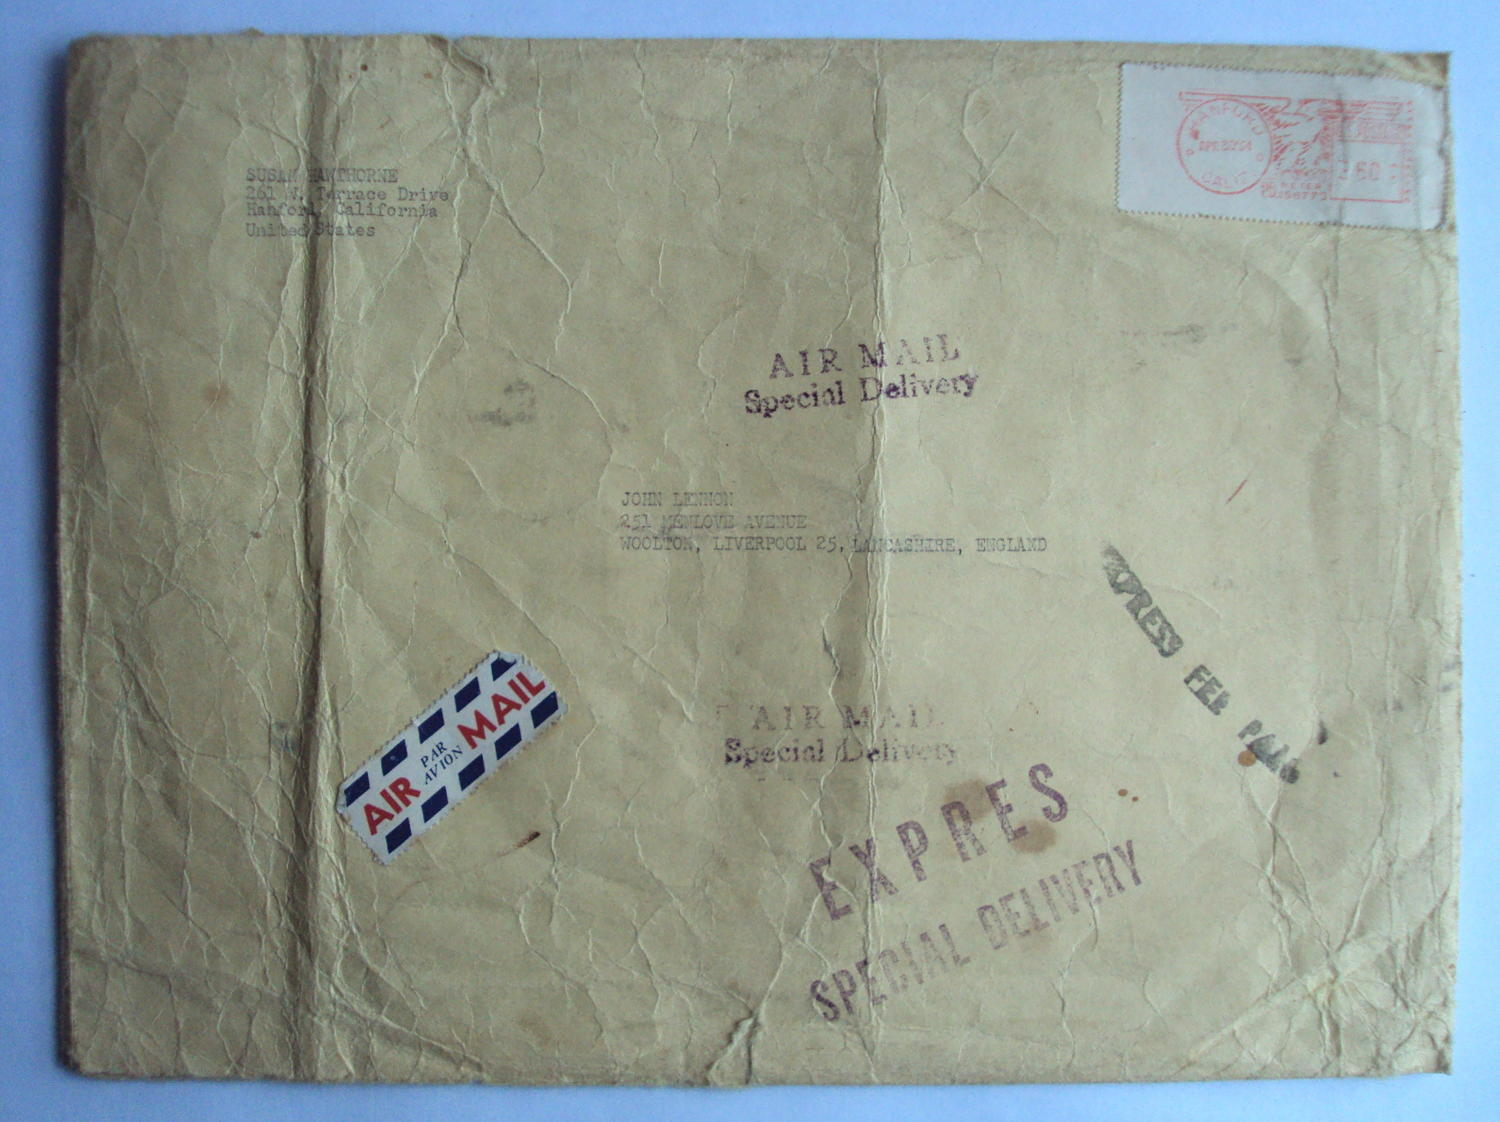 JOHN LENNON - The Beatles, An Envelope Addressed to John Lennon